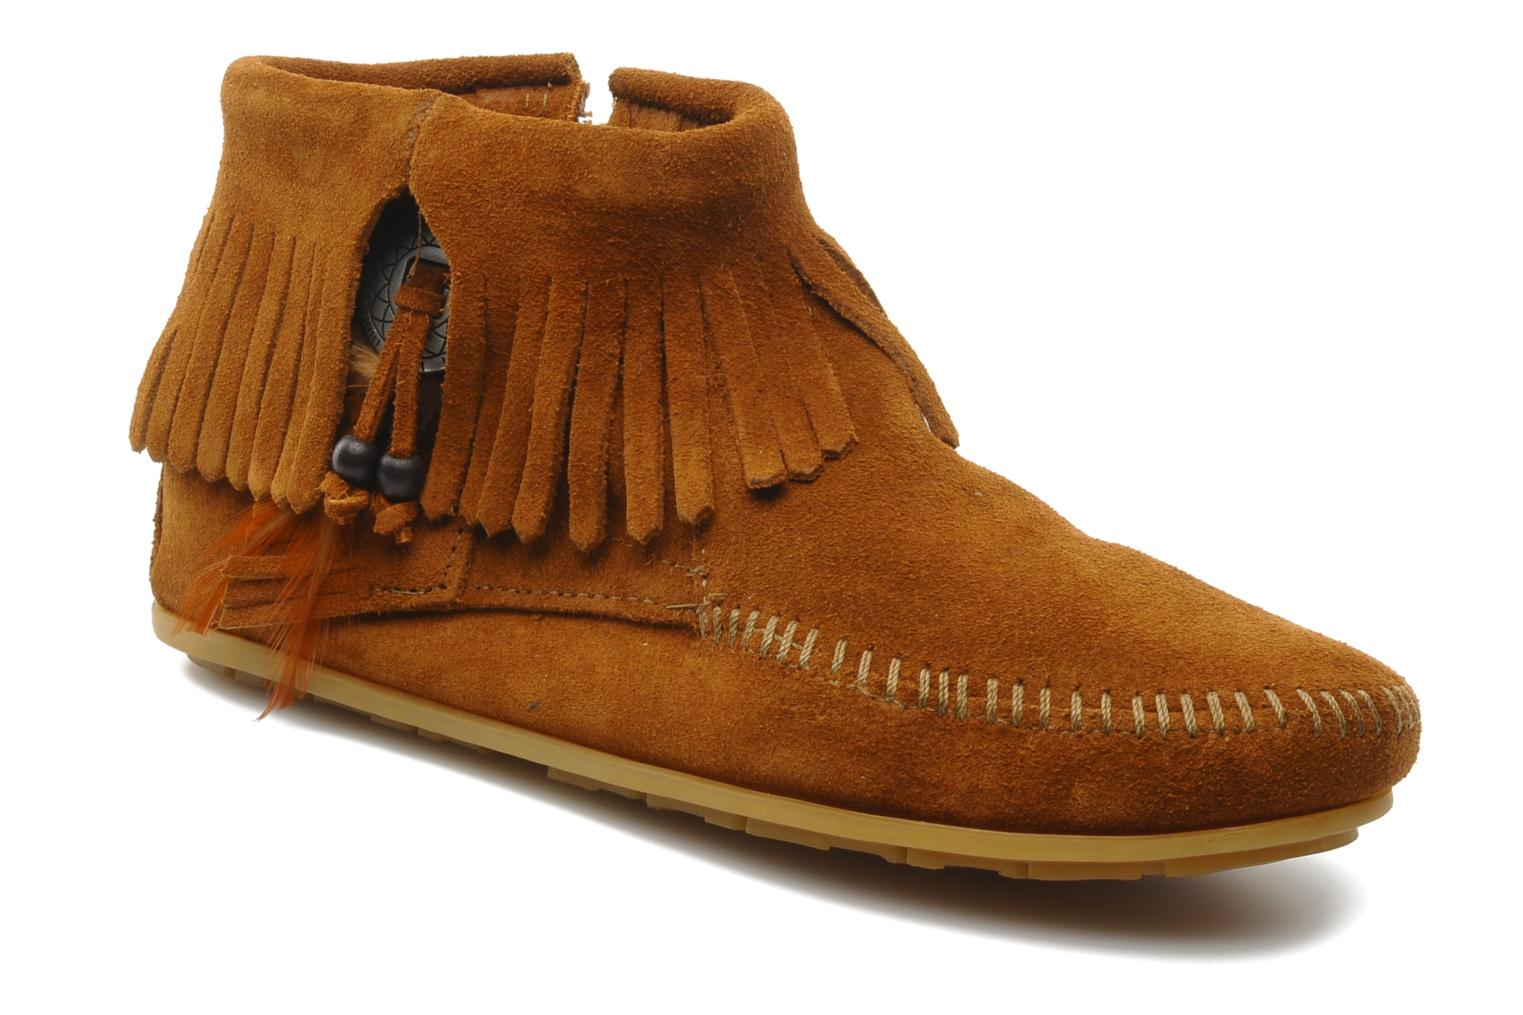 Bottines et boots Minnetonka CONCHOFEATHER BT Marron vue détail/paire